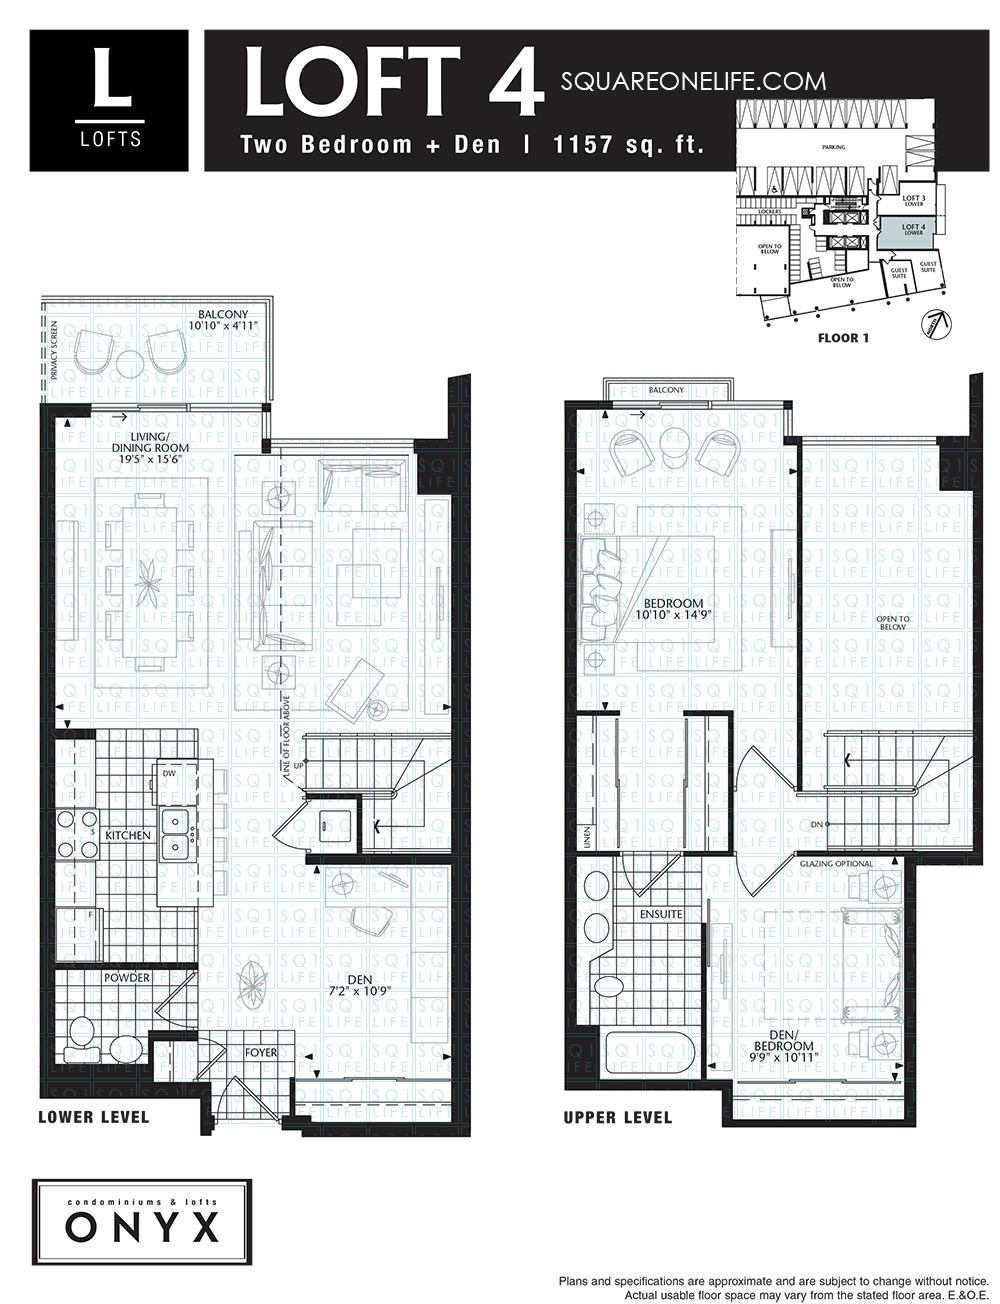 Onyx condo 223 webb dr mississauga squareonelife for Loft floorplans